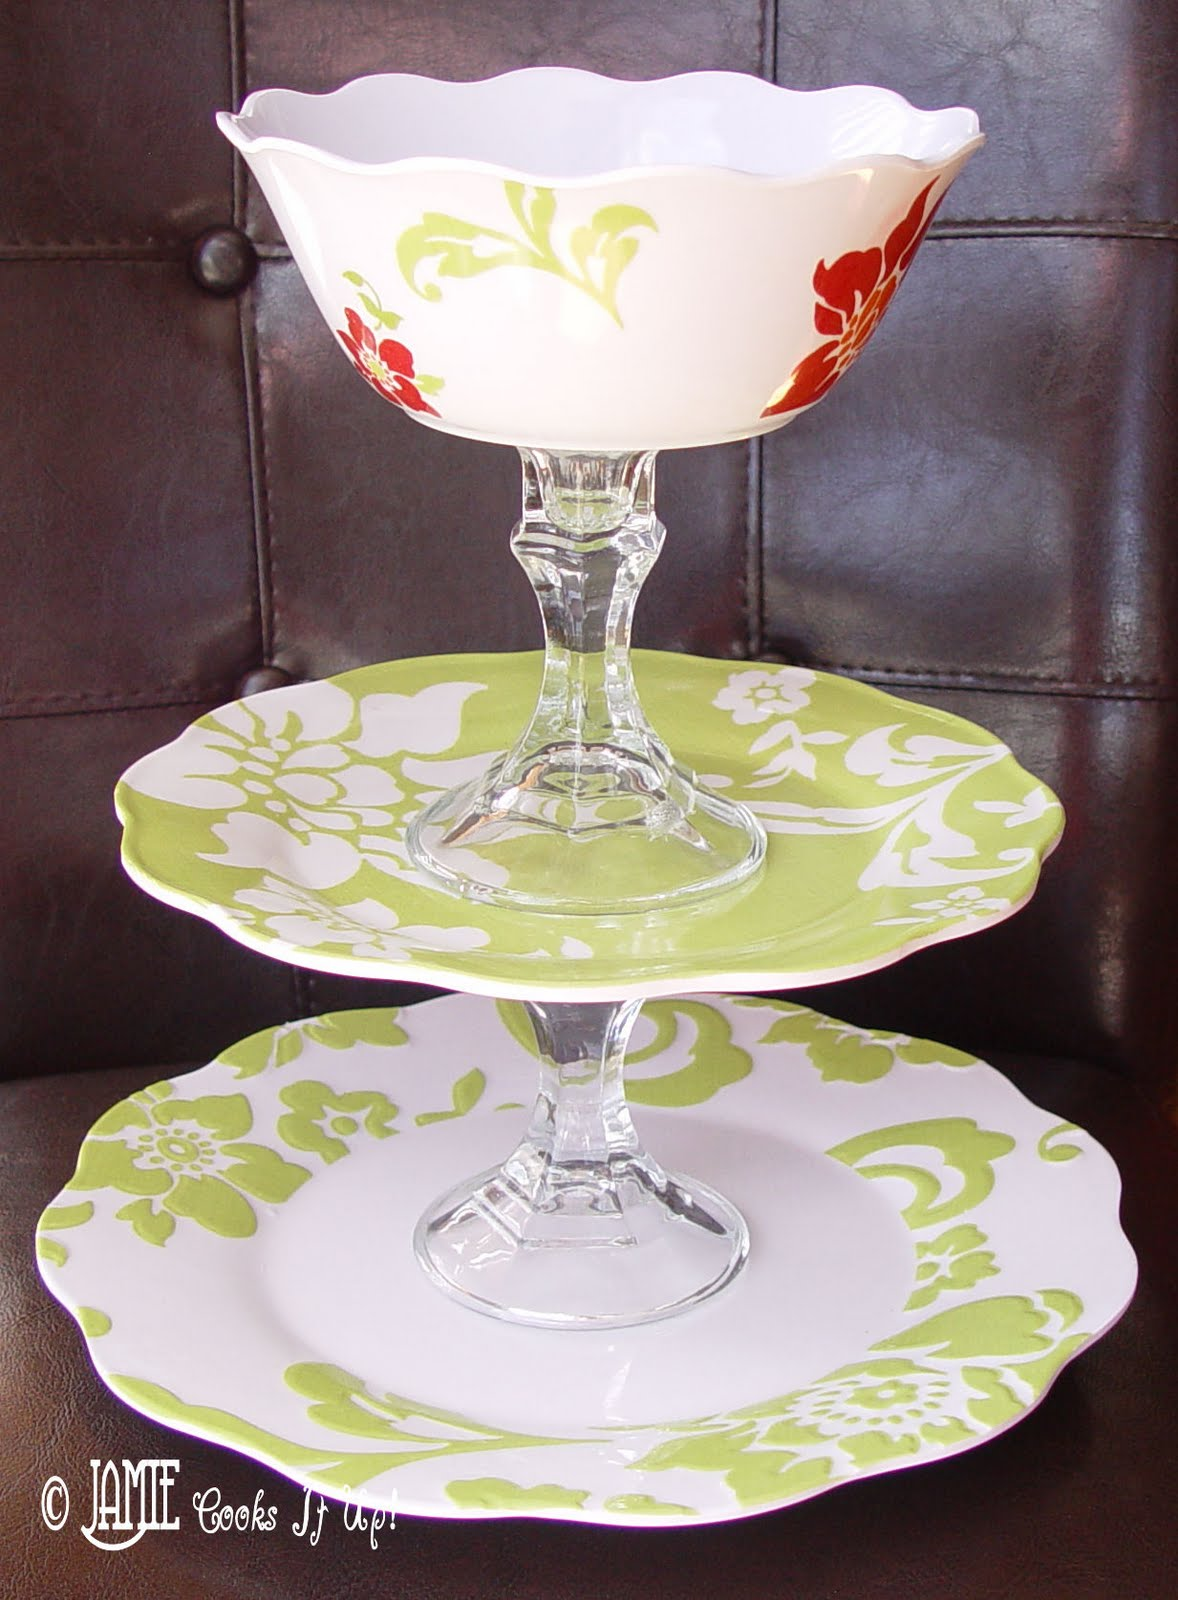 Best How to make your own Tiered Serving Platter for ***CHEAP*** QA12